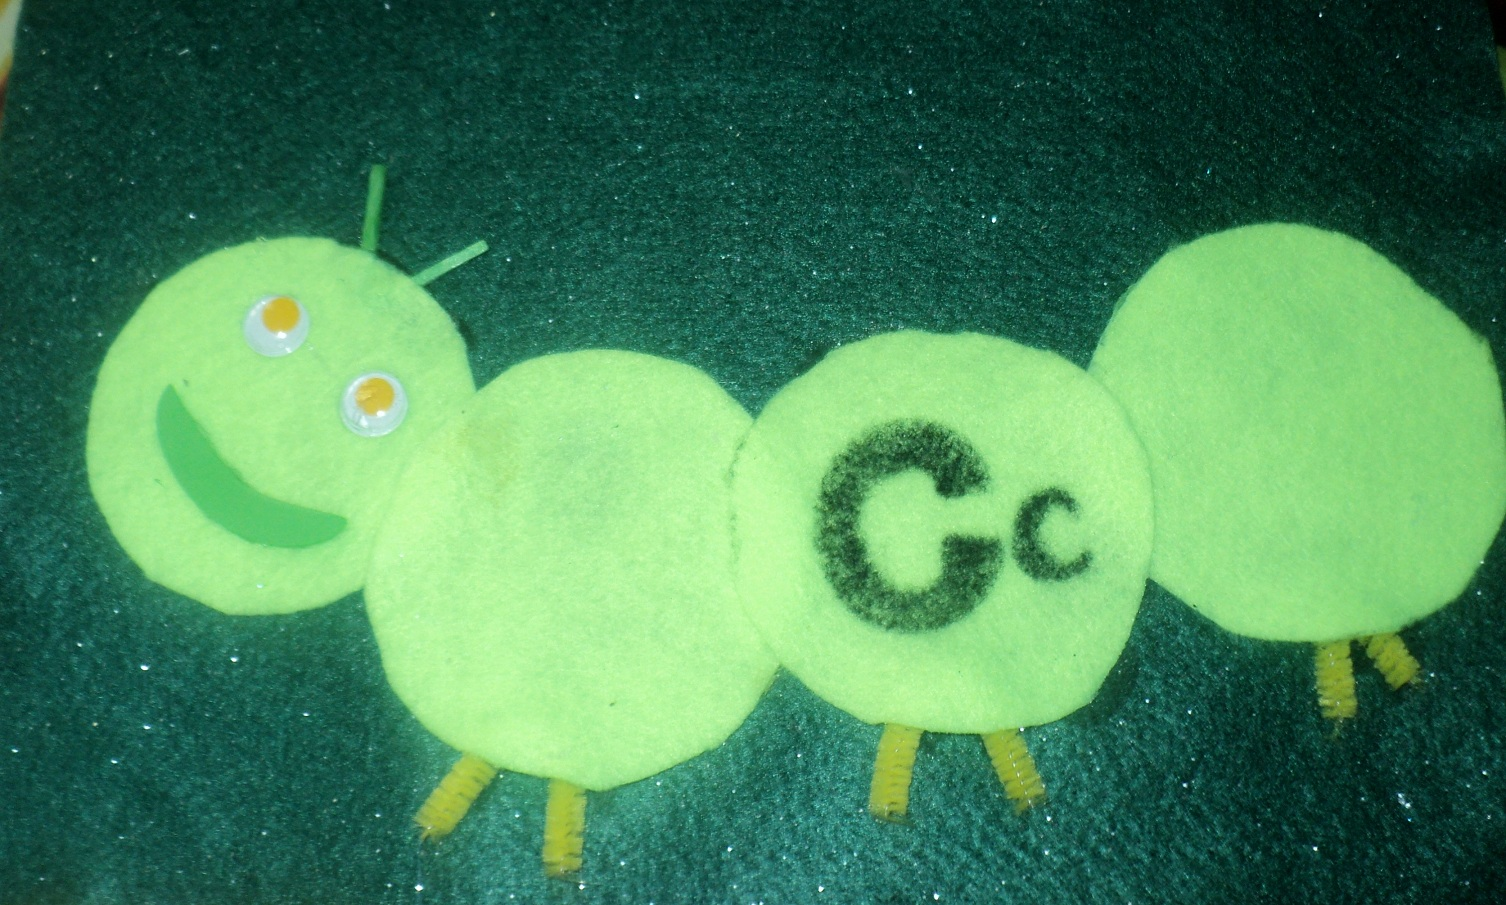 Adventures at home with Mum: C is for Caterpillar: 3 caterpillars to